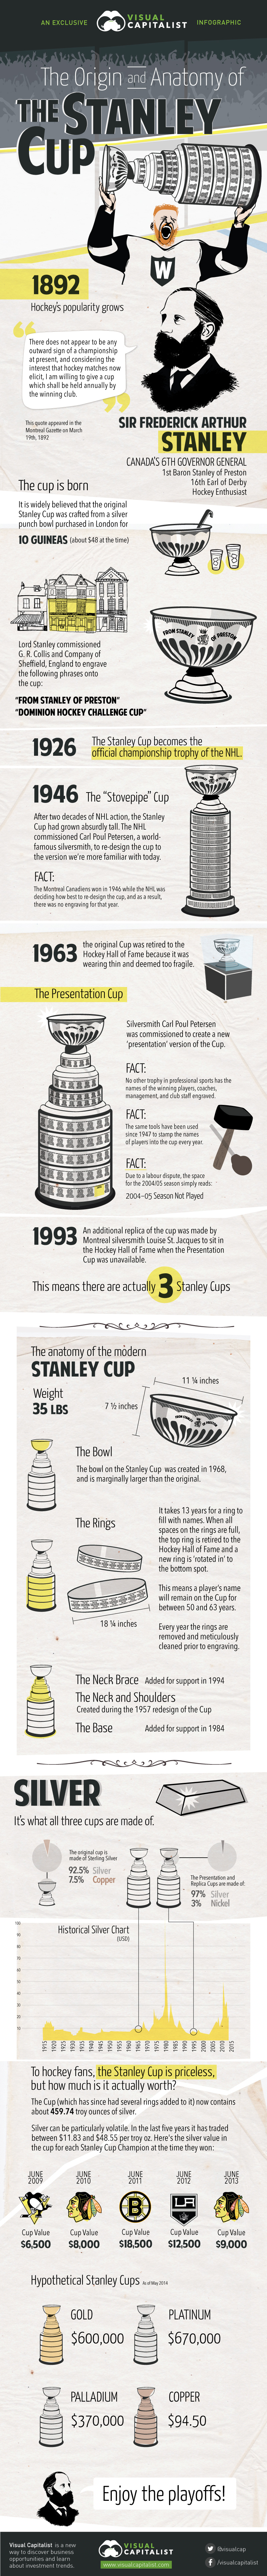 The Origin and Anatomy of the Stanley Cup Infographic